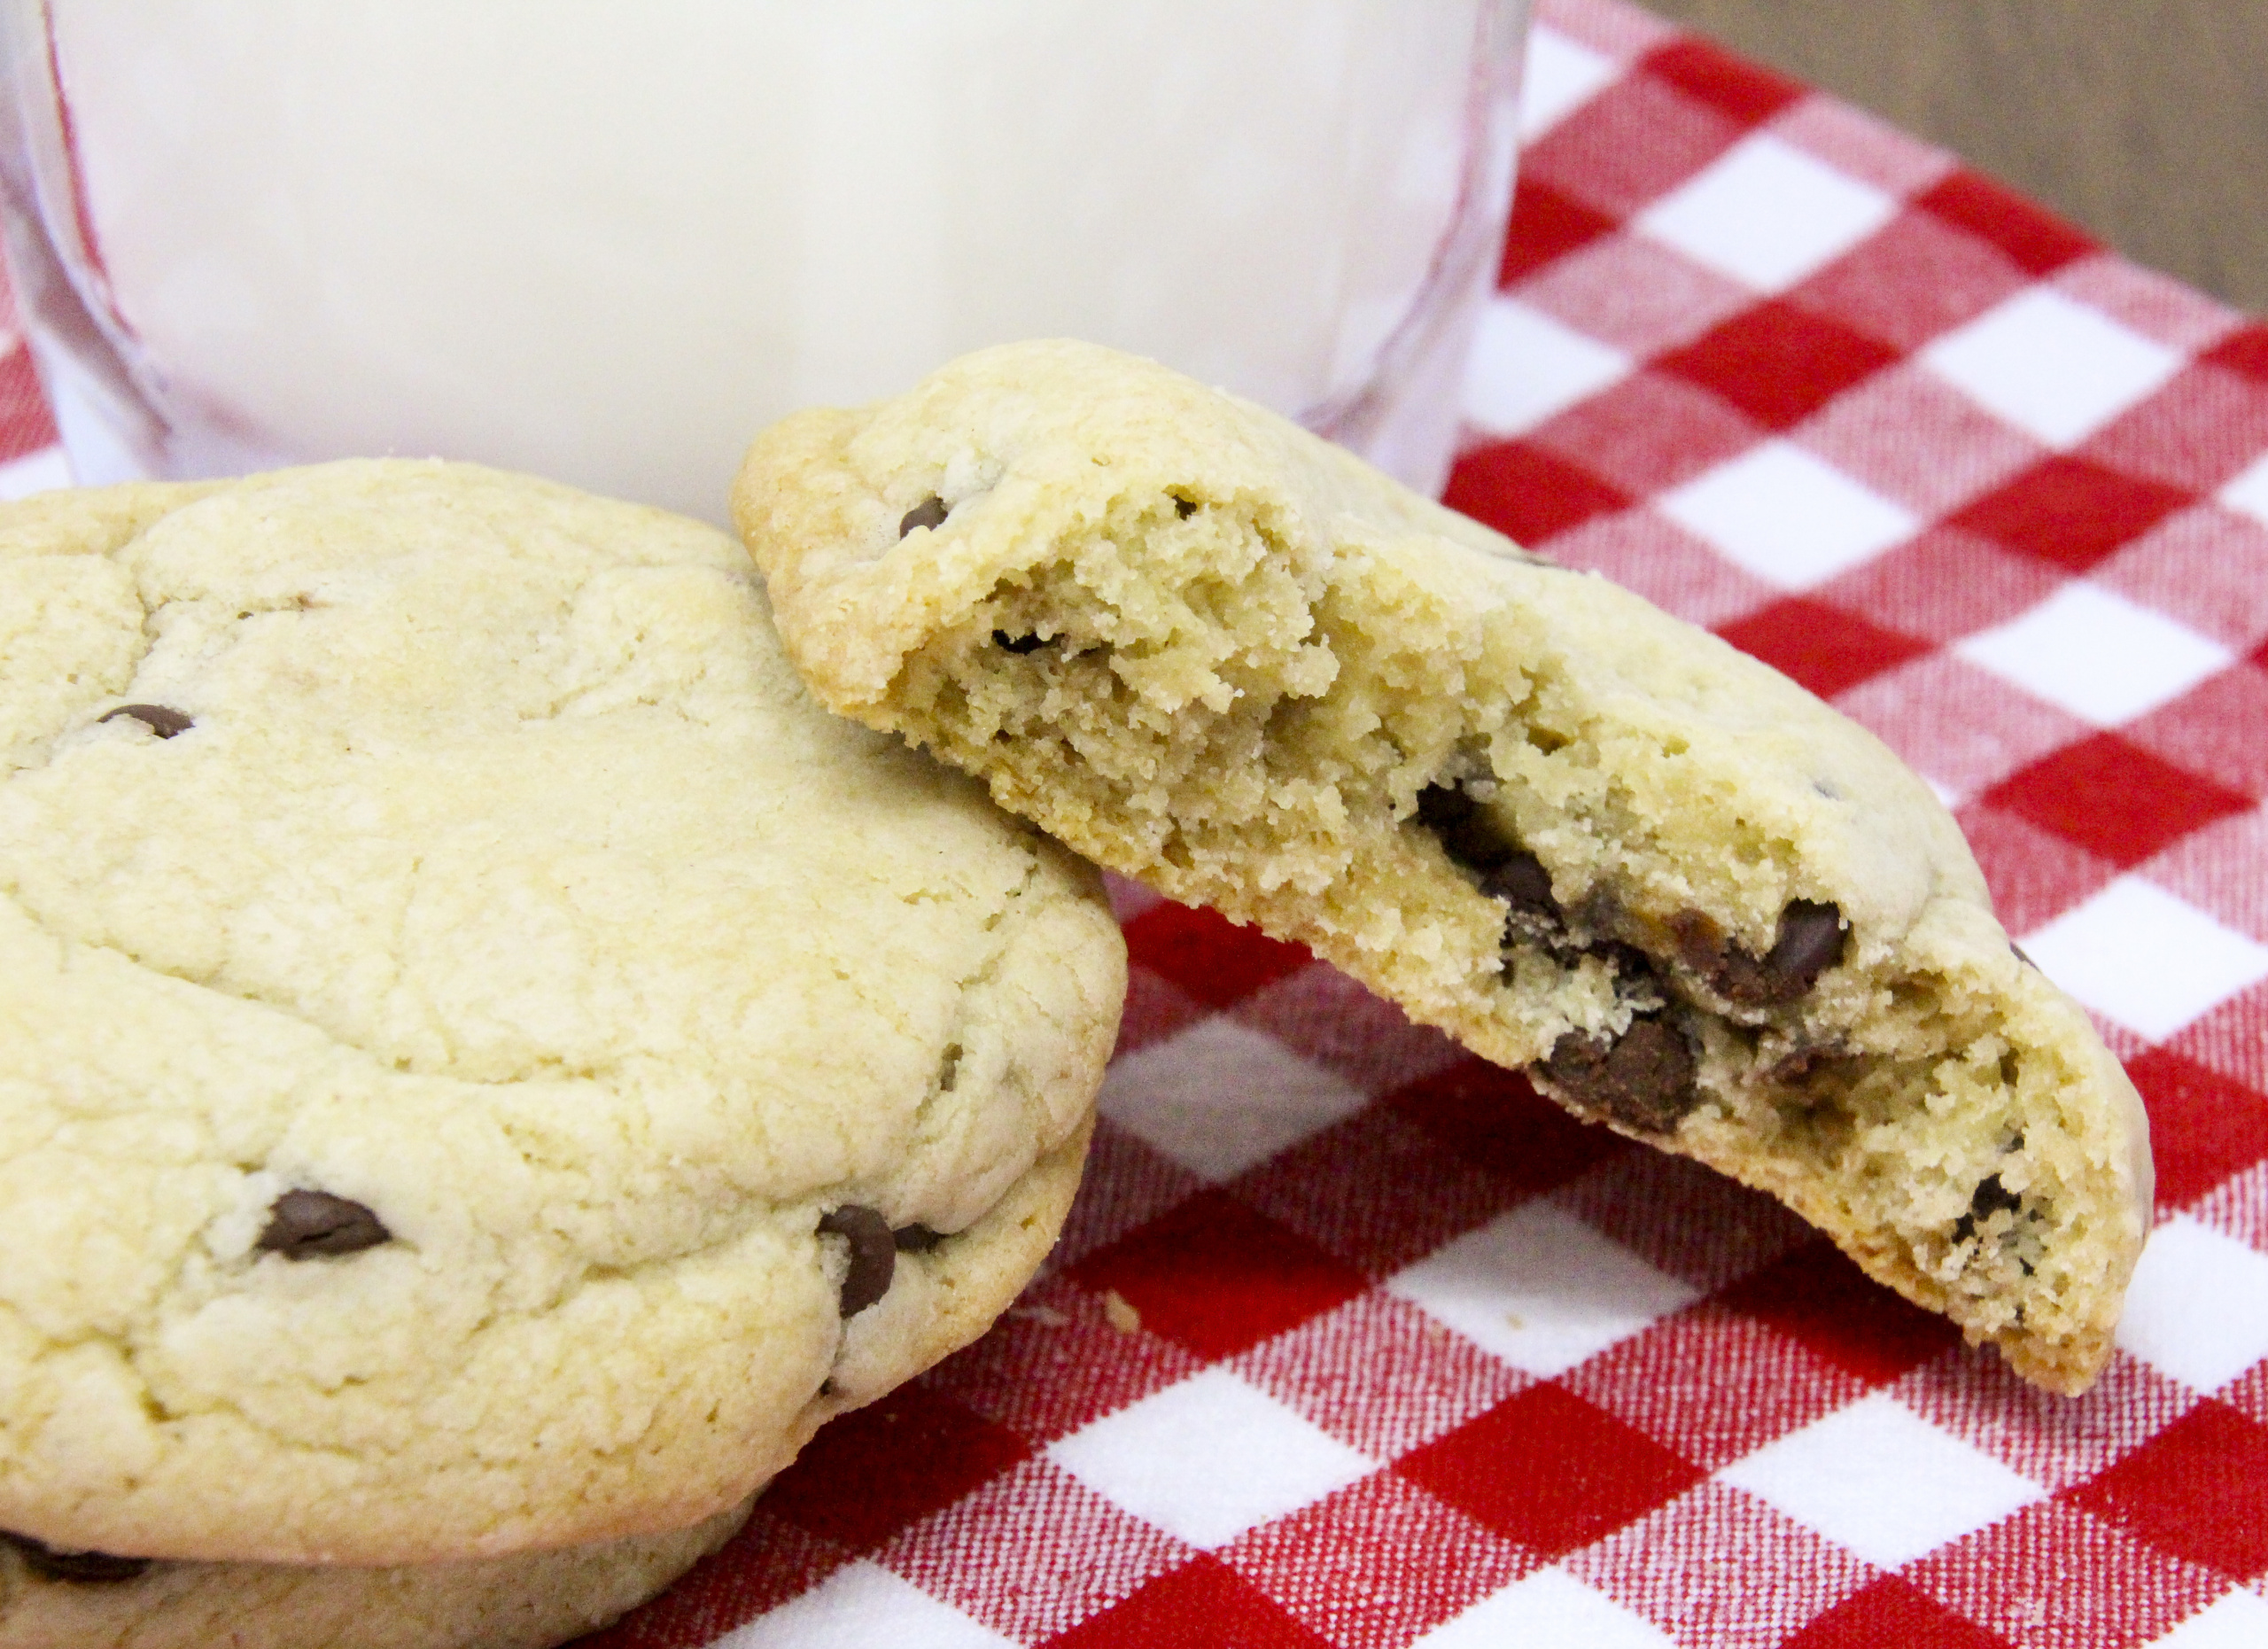 Vicki's Chocolate Chip Cookies are chockfull of just the right amount of chips and are soft and slightly cakelike… and leftovers stay soft! Recipe shared with permission granted by Vicki Delany, author of MURDER IN A TEACUP.